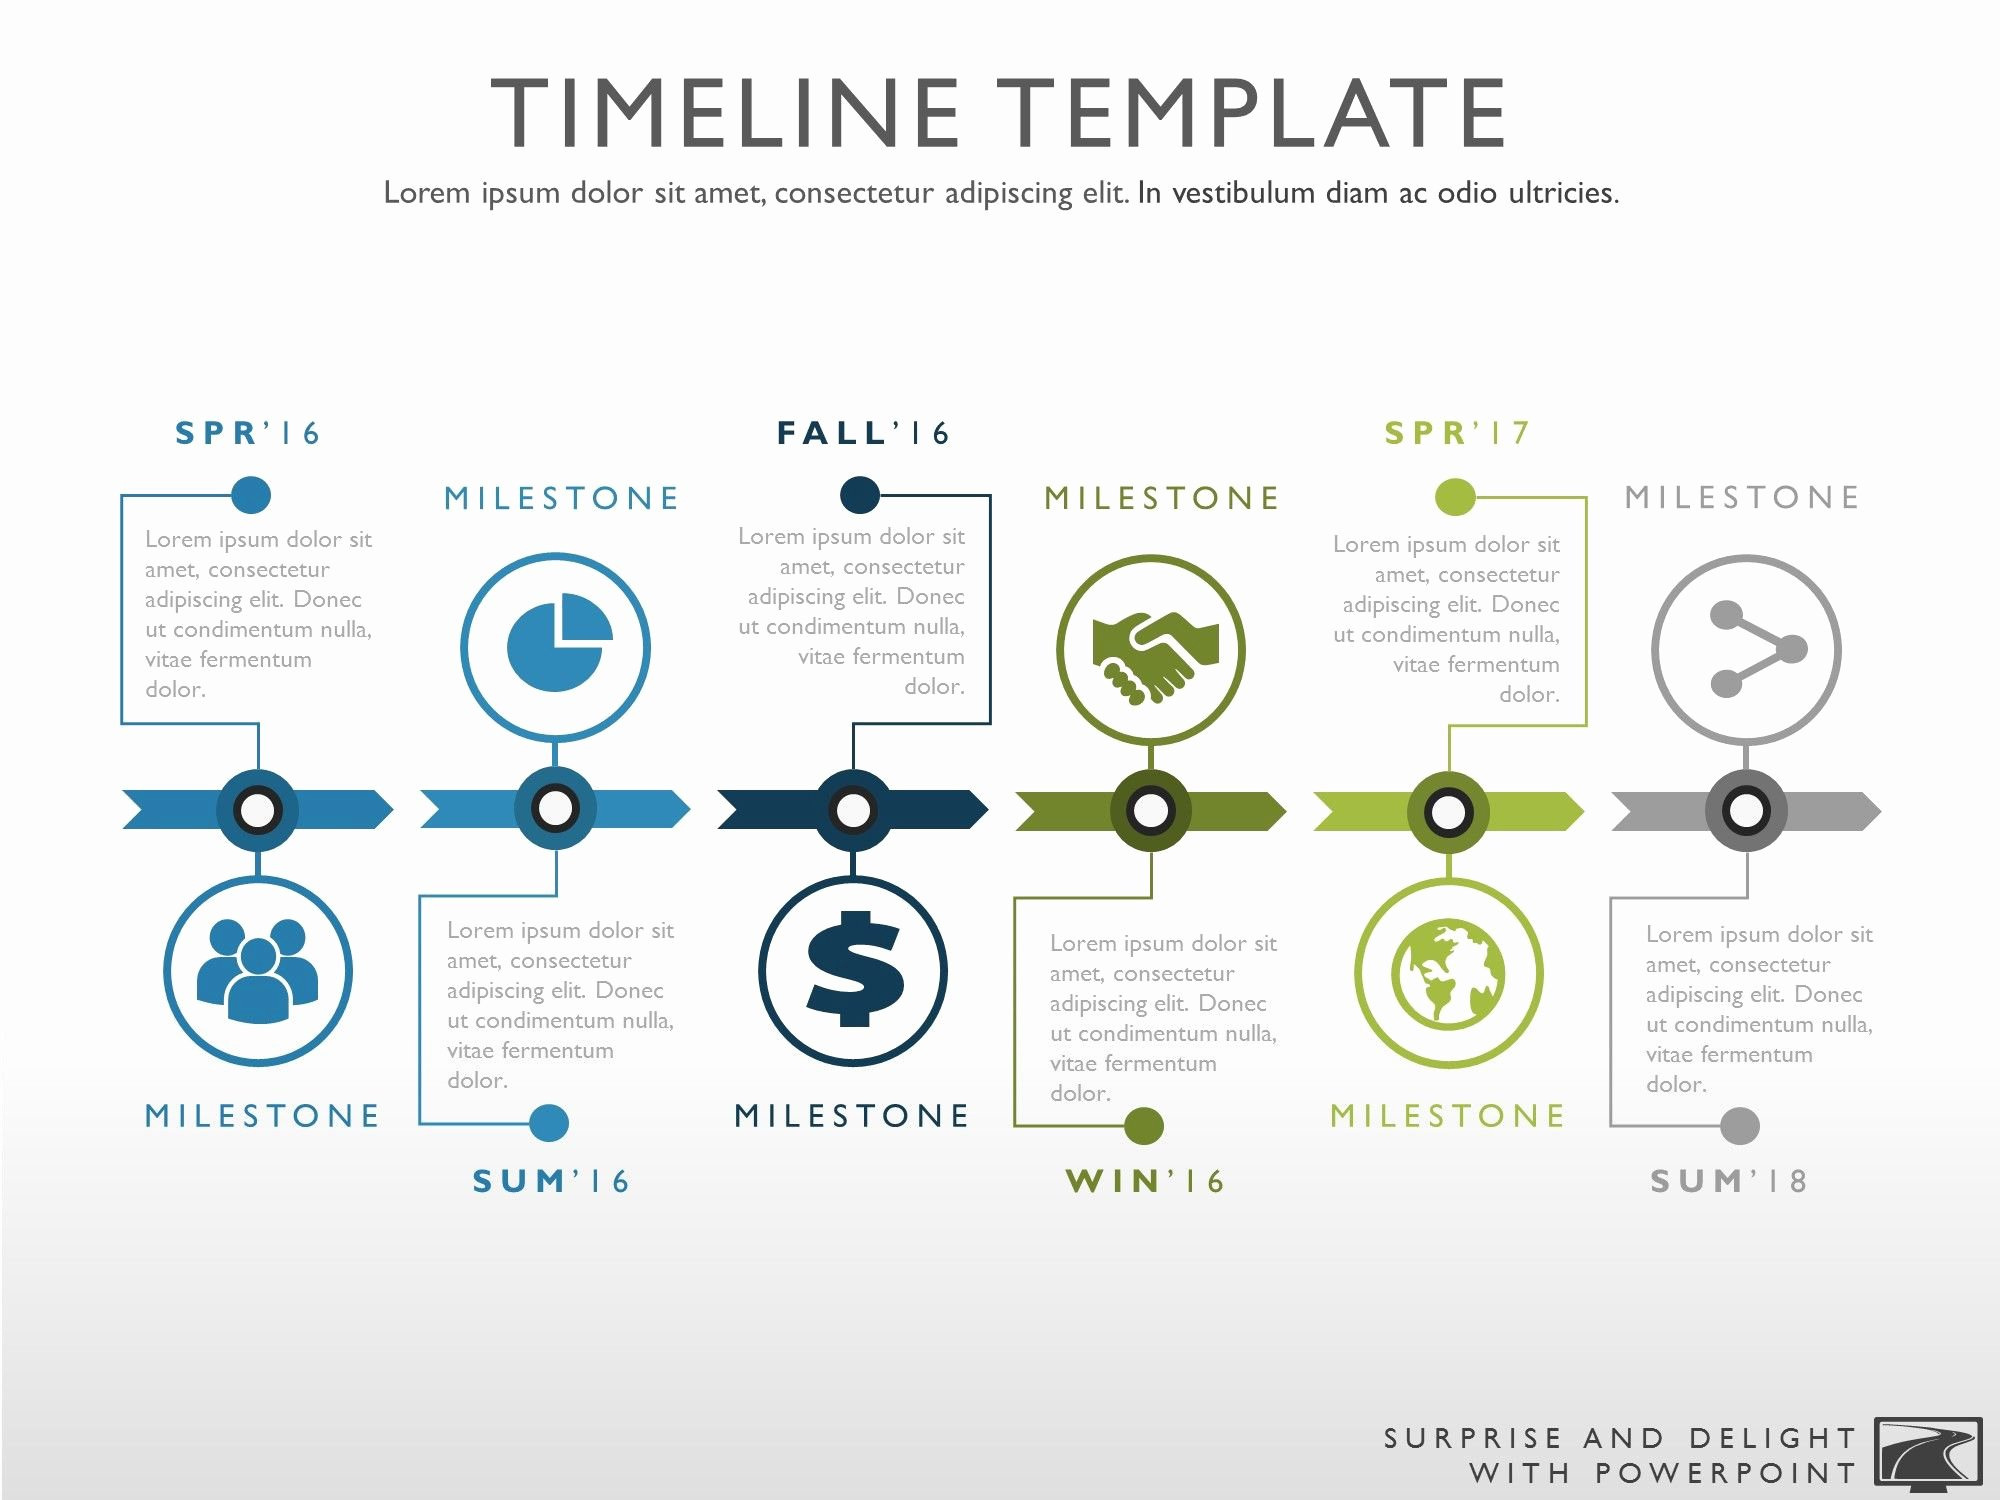 Project Plan Template Powerpoint Unique Timeline Template for Powerpoint Great Project Management